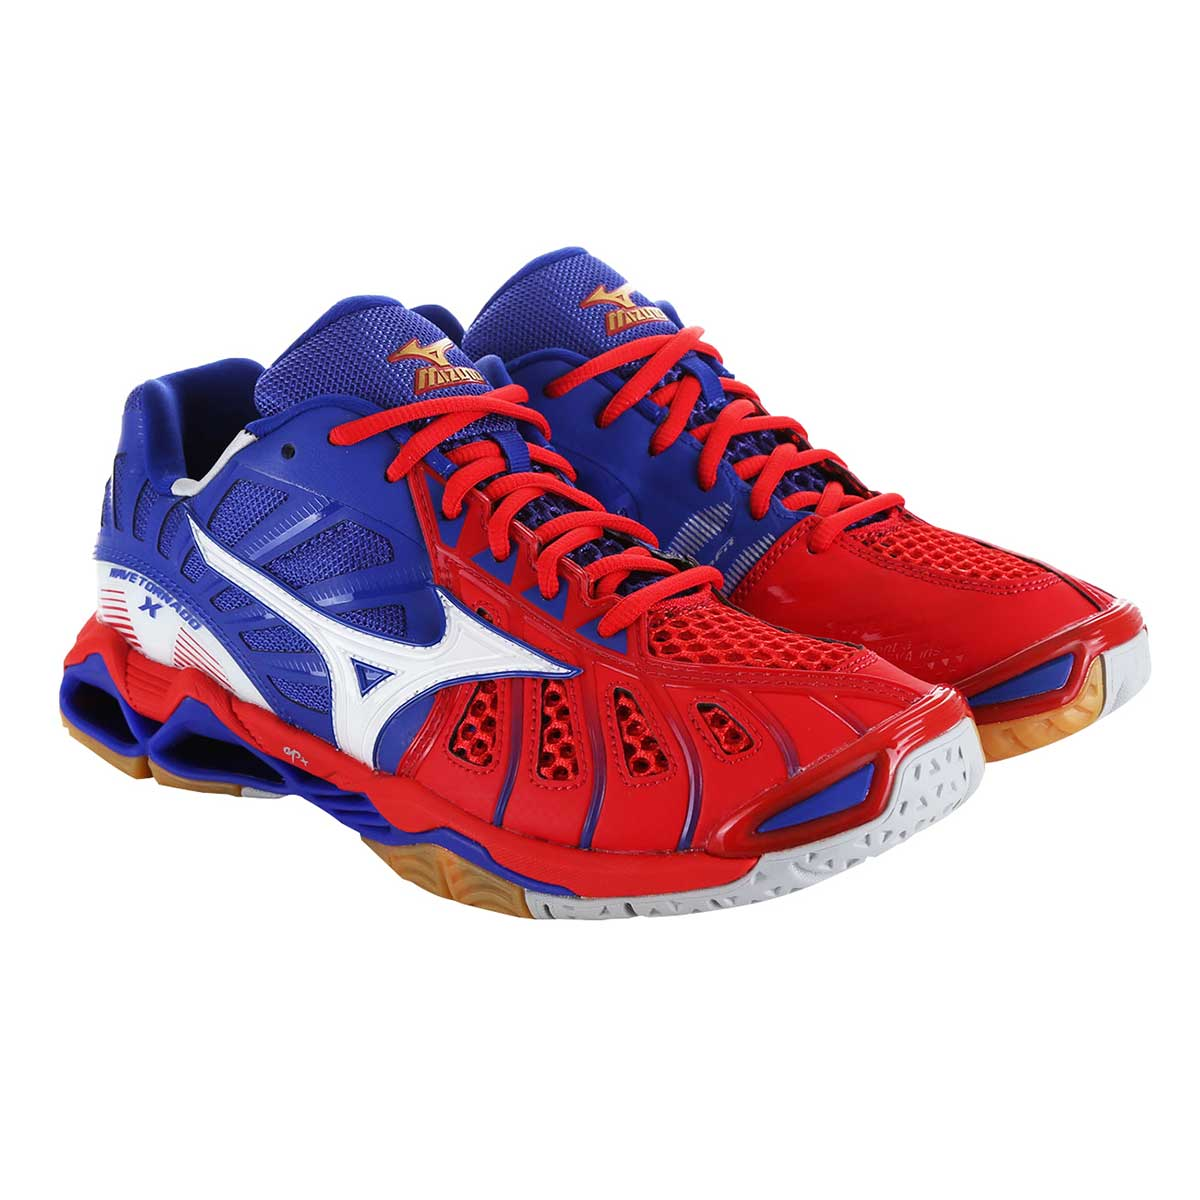 Buy Mizuno Wave Tornado X Indoor Court Shoes (Red White) Online 383a6ae50cf